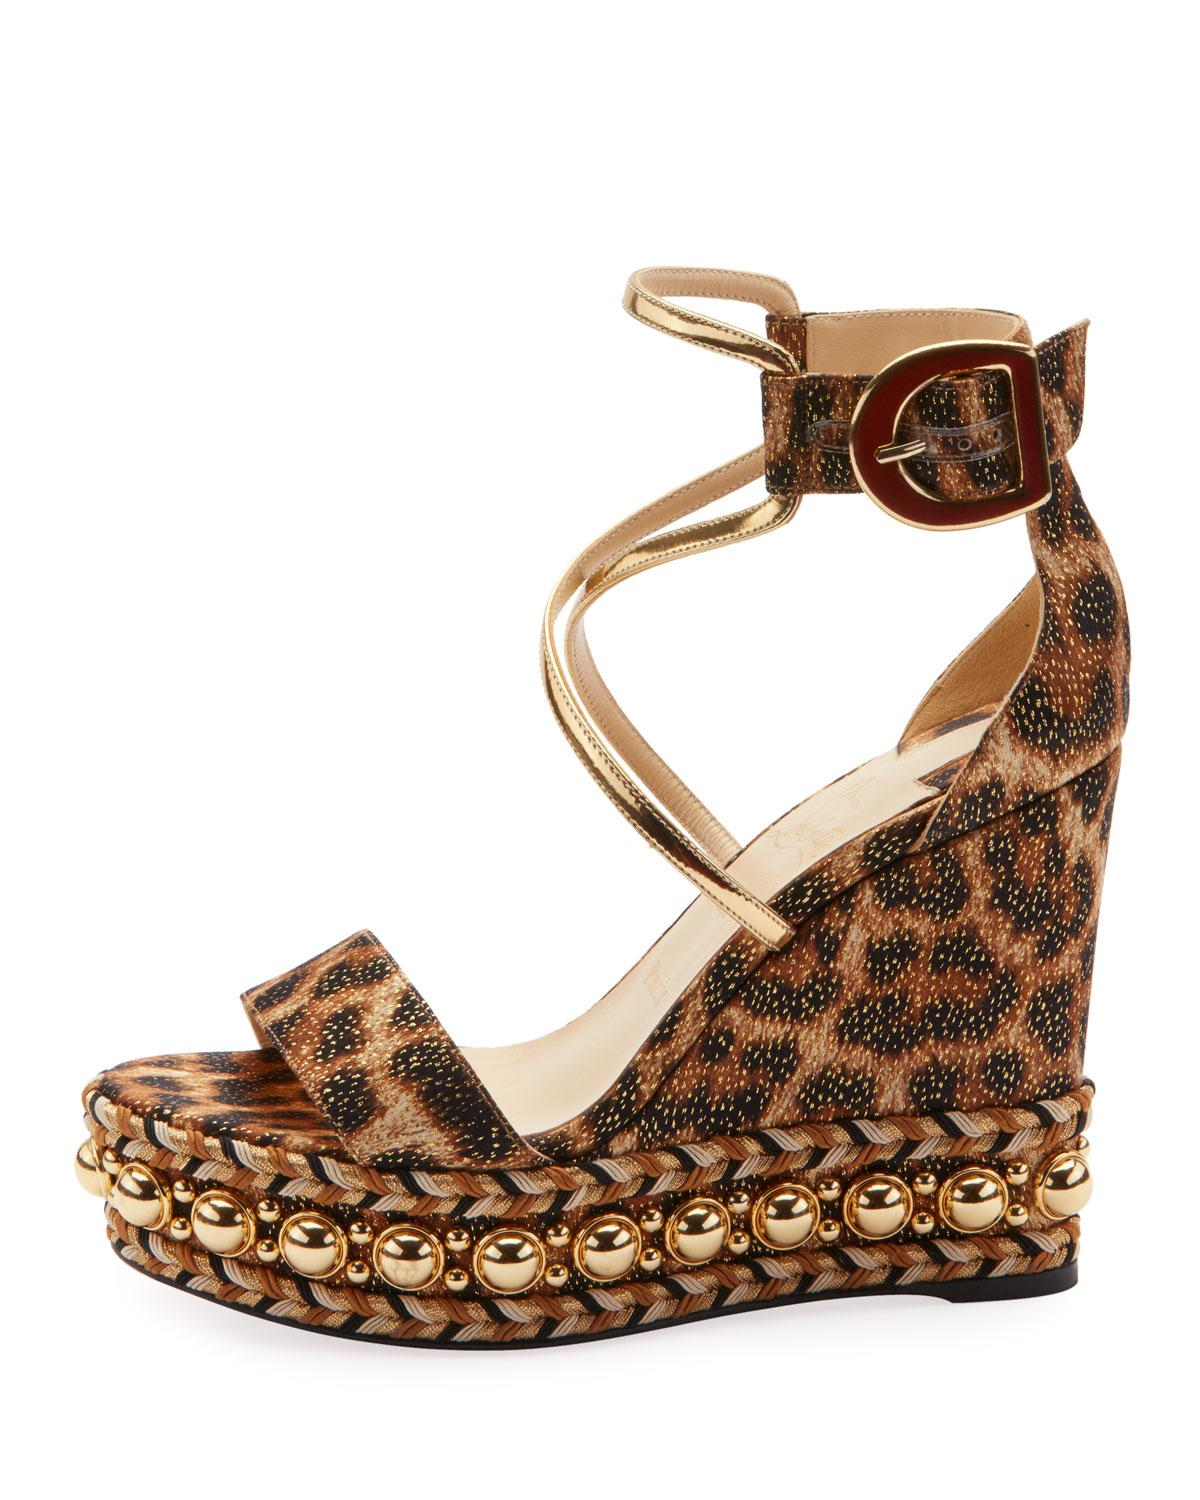 aed62bc774b4 Christian Louboutin Chocazeppa Leopard Wedge Red Sole Espadrille Sandals in  Brown - Lyst